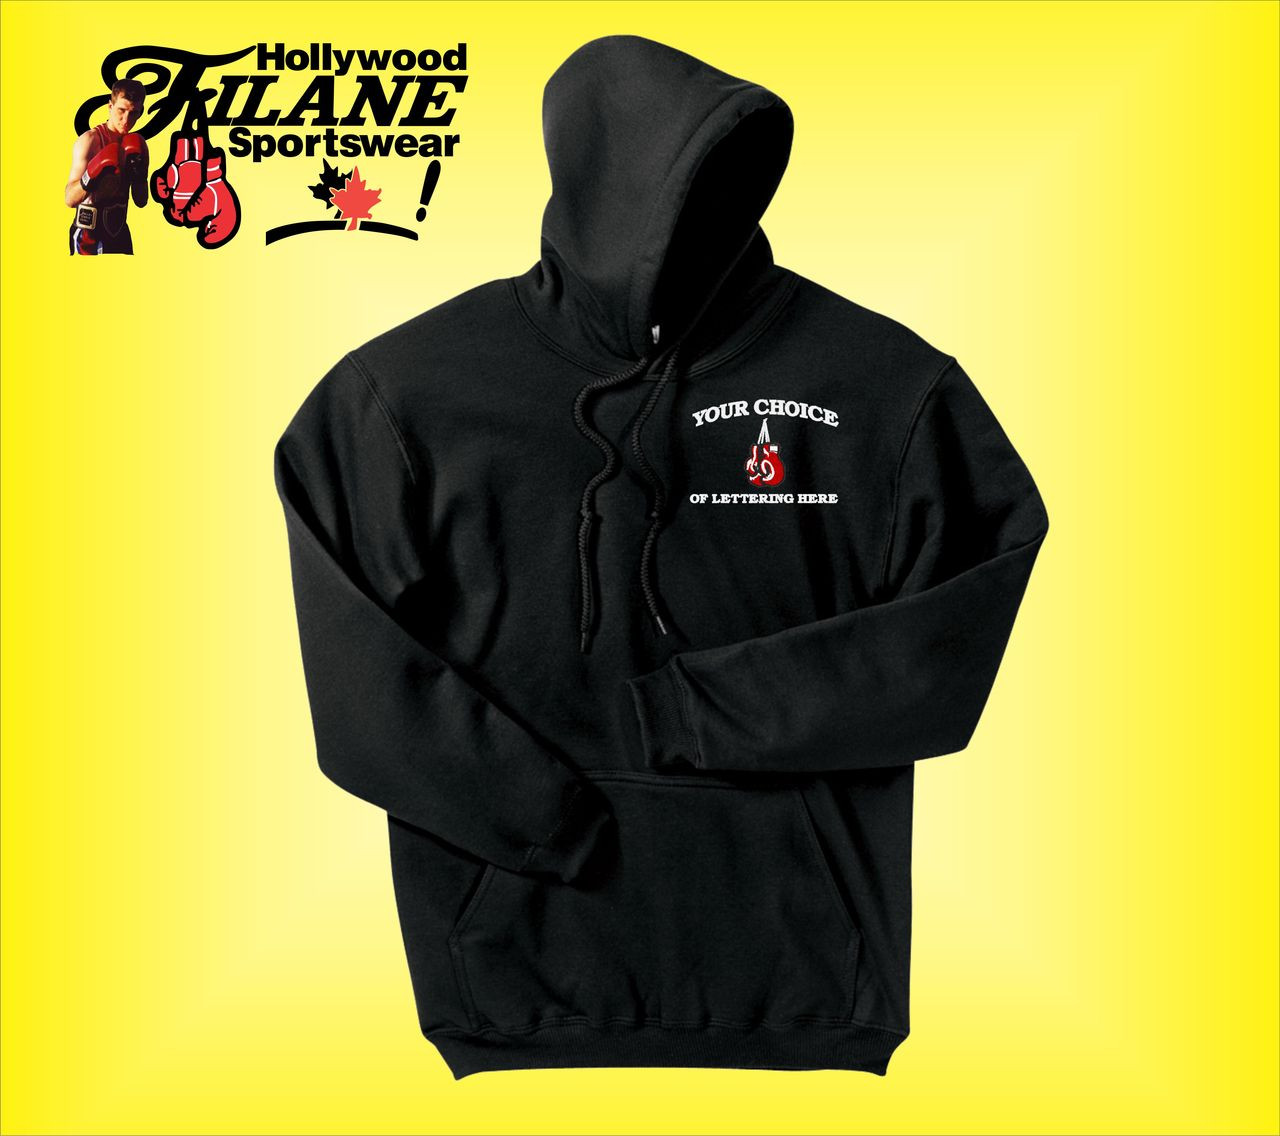 712d8d0d4d8 Personalized Boxing custom logo Hooded Sweatshirt - Hollywood Filane